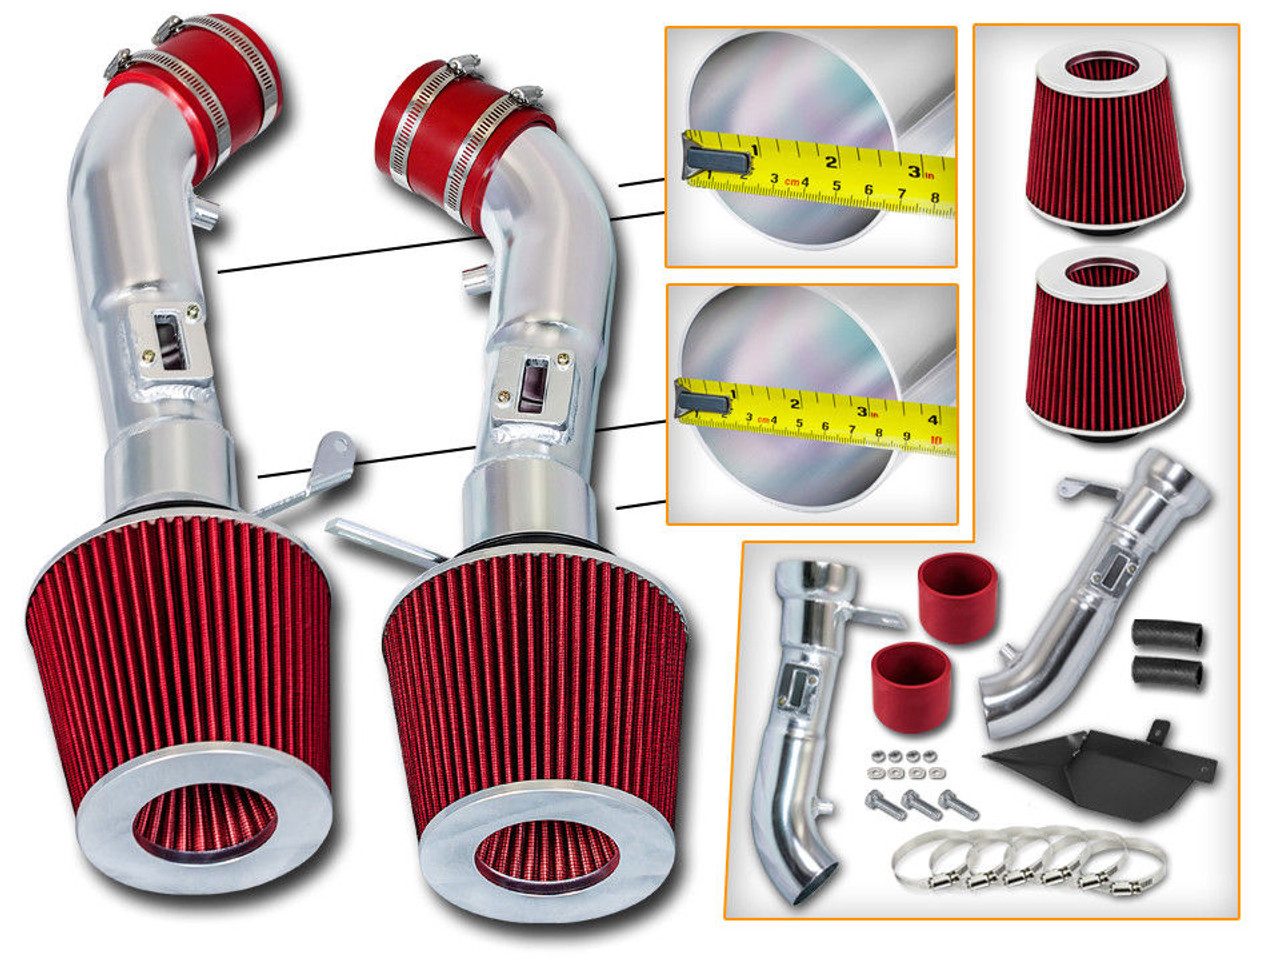 Red Cold Air Intake Kit for Nissan 370Z (2009-2019) with 3 7L V6 Engine